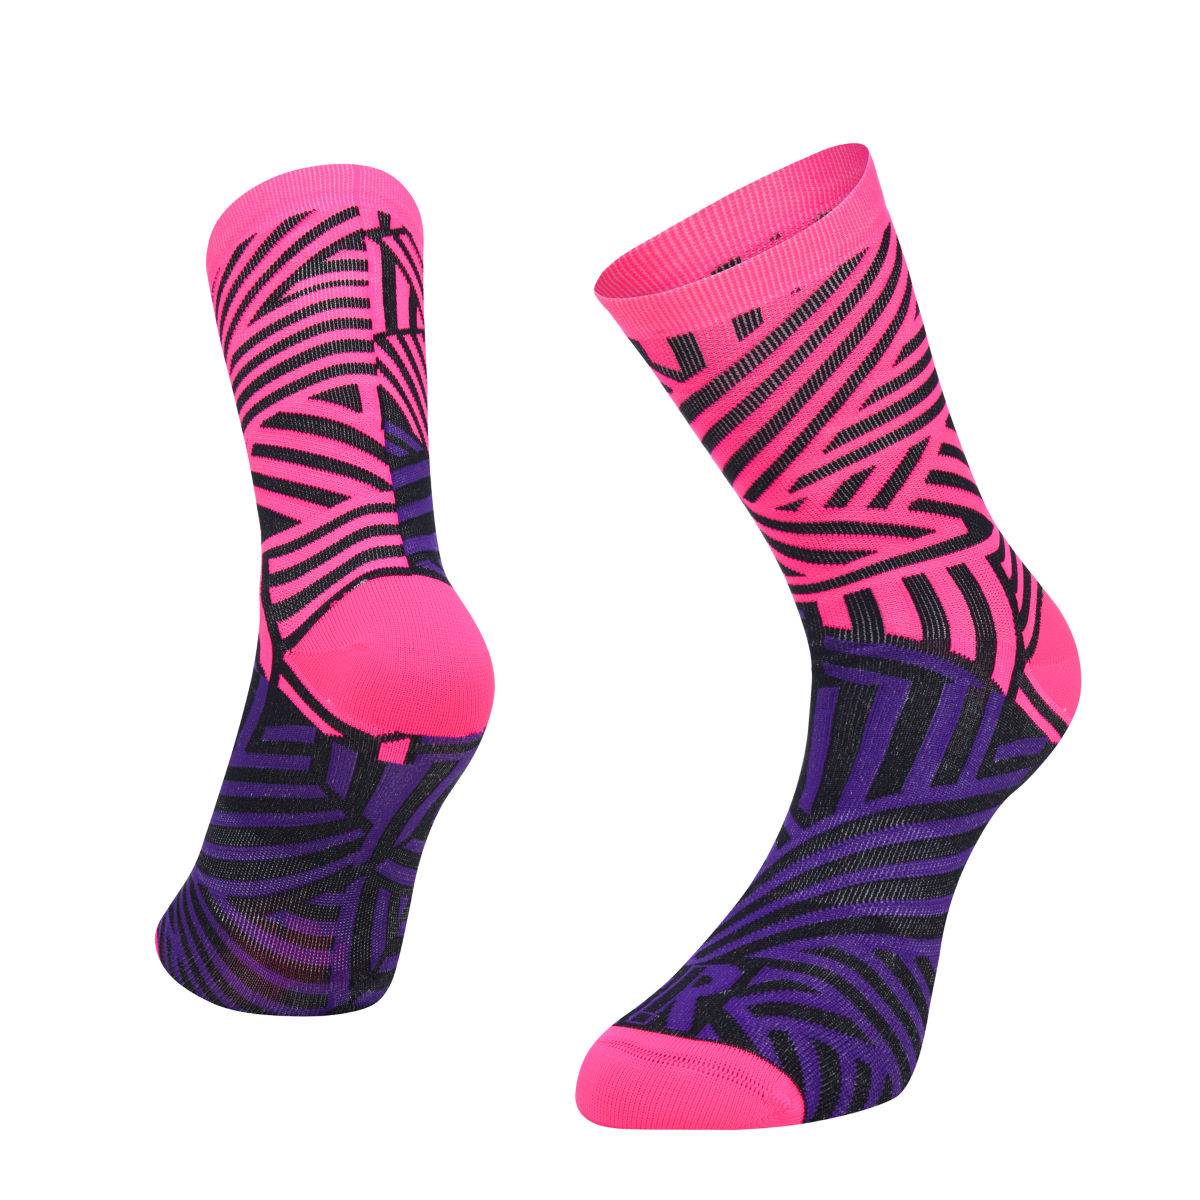 Ratio Dash 16 cm Sock (Pink/Purple) - Calcetines